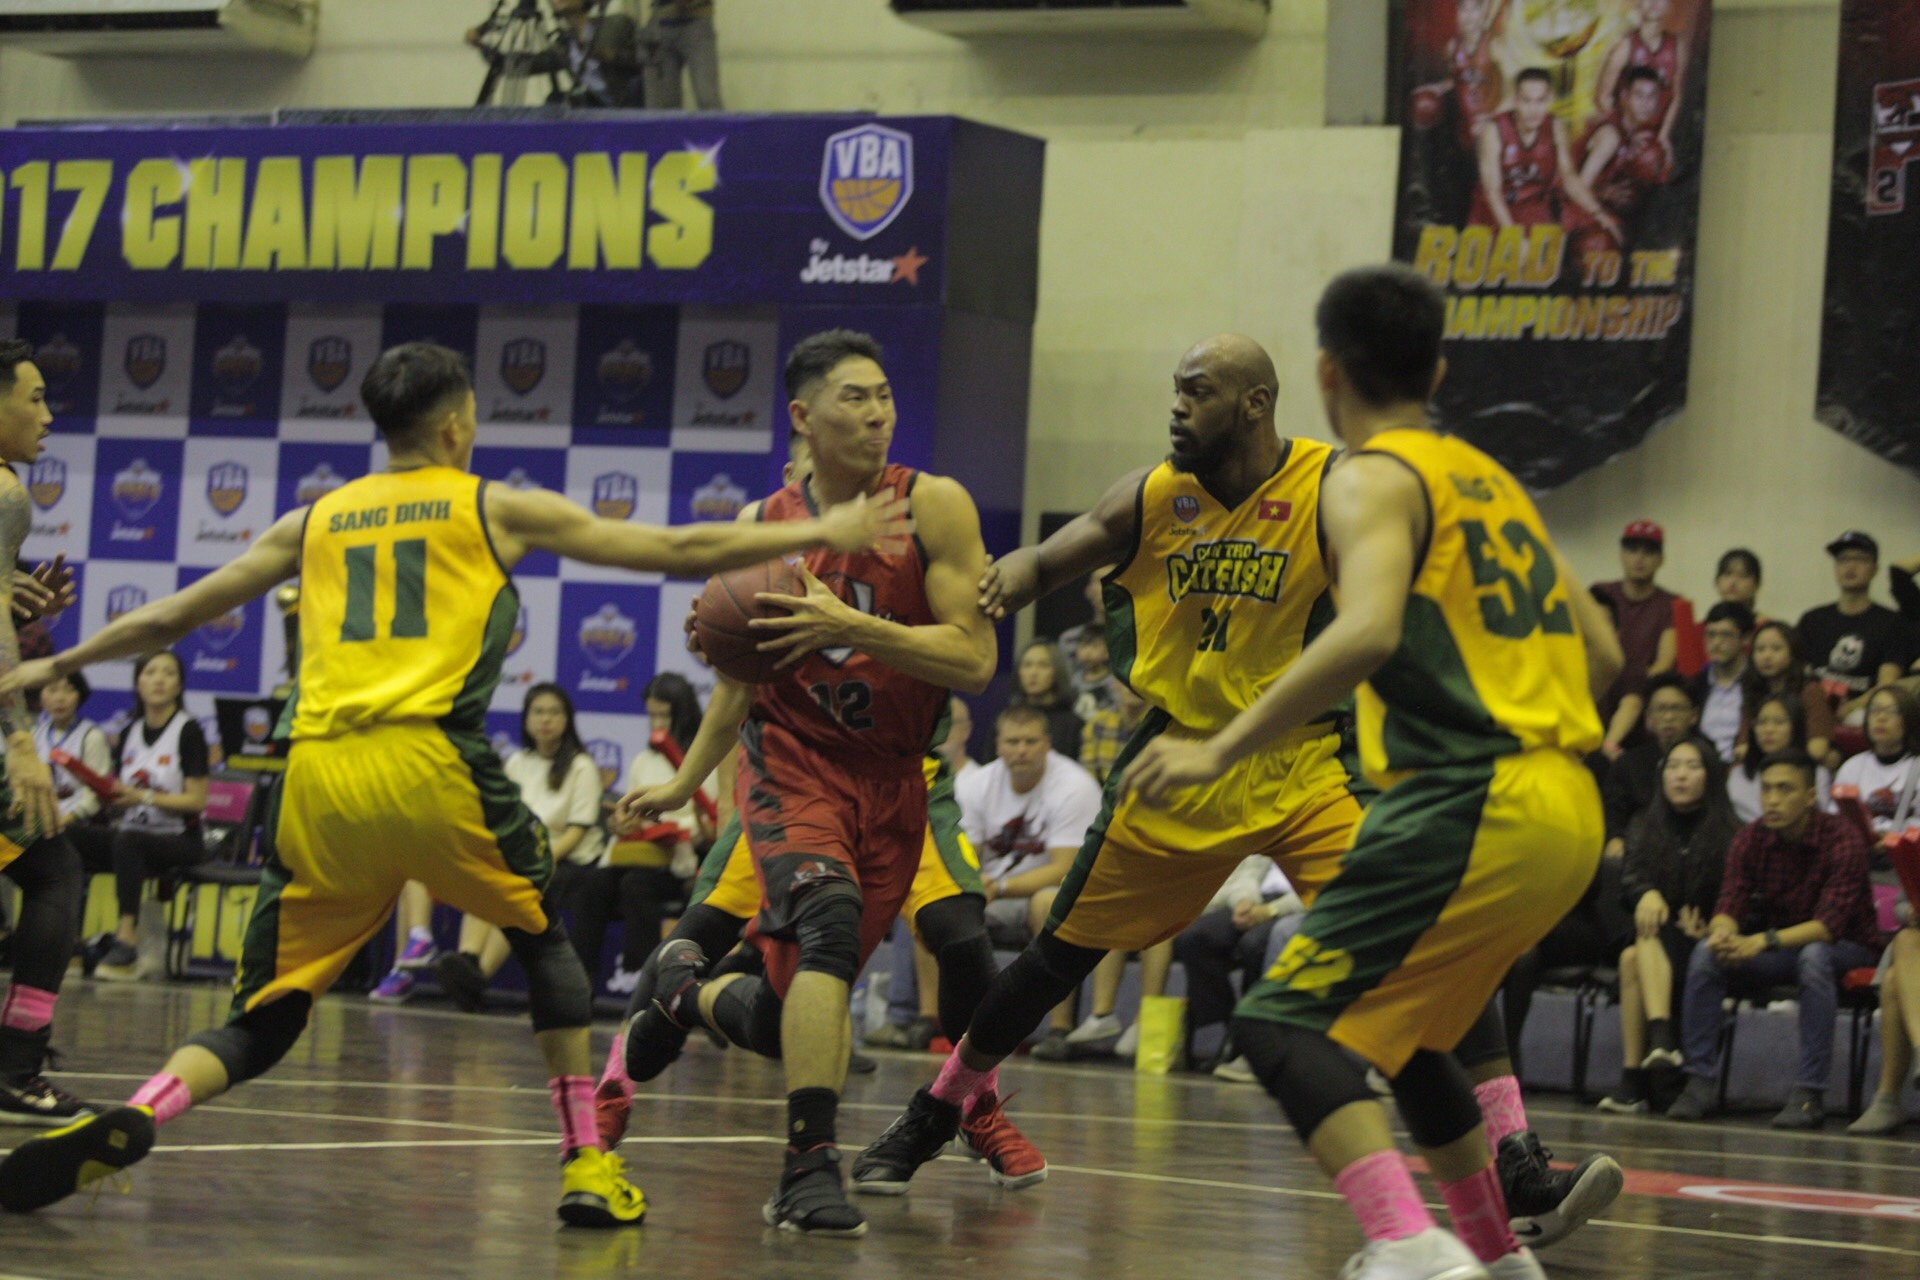 Thanglong Warriors vs Cantho Catfish anh 22